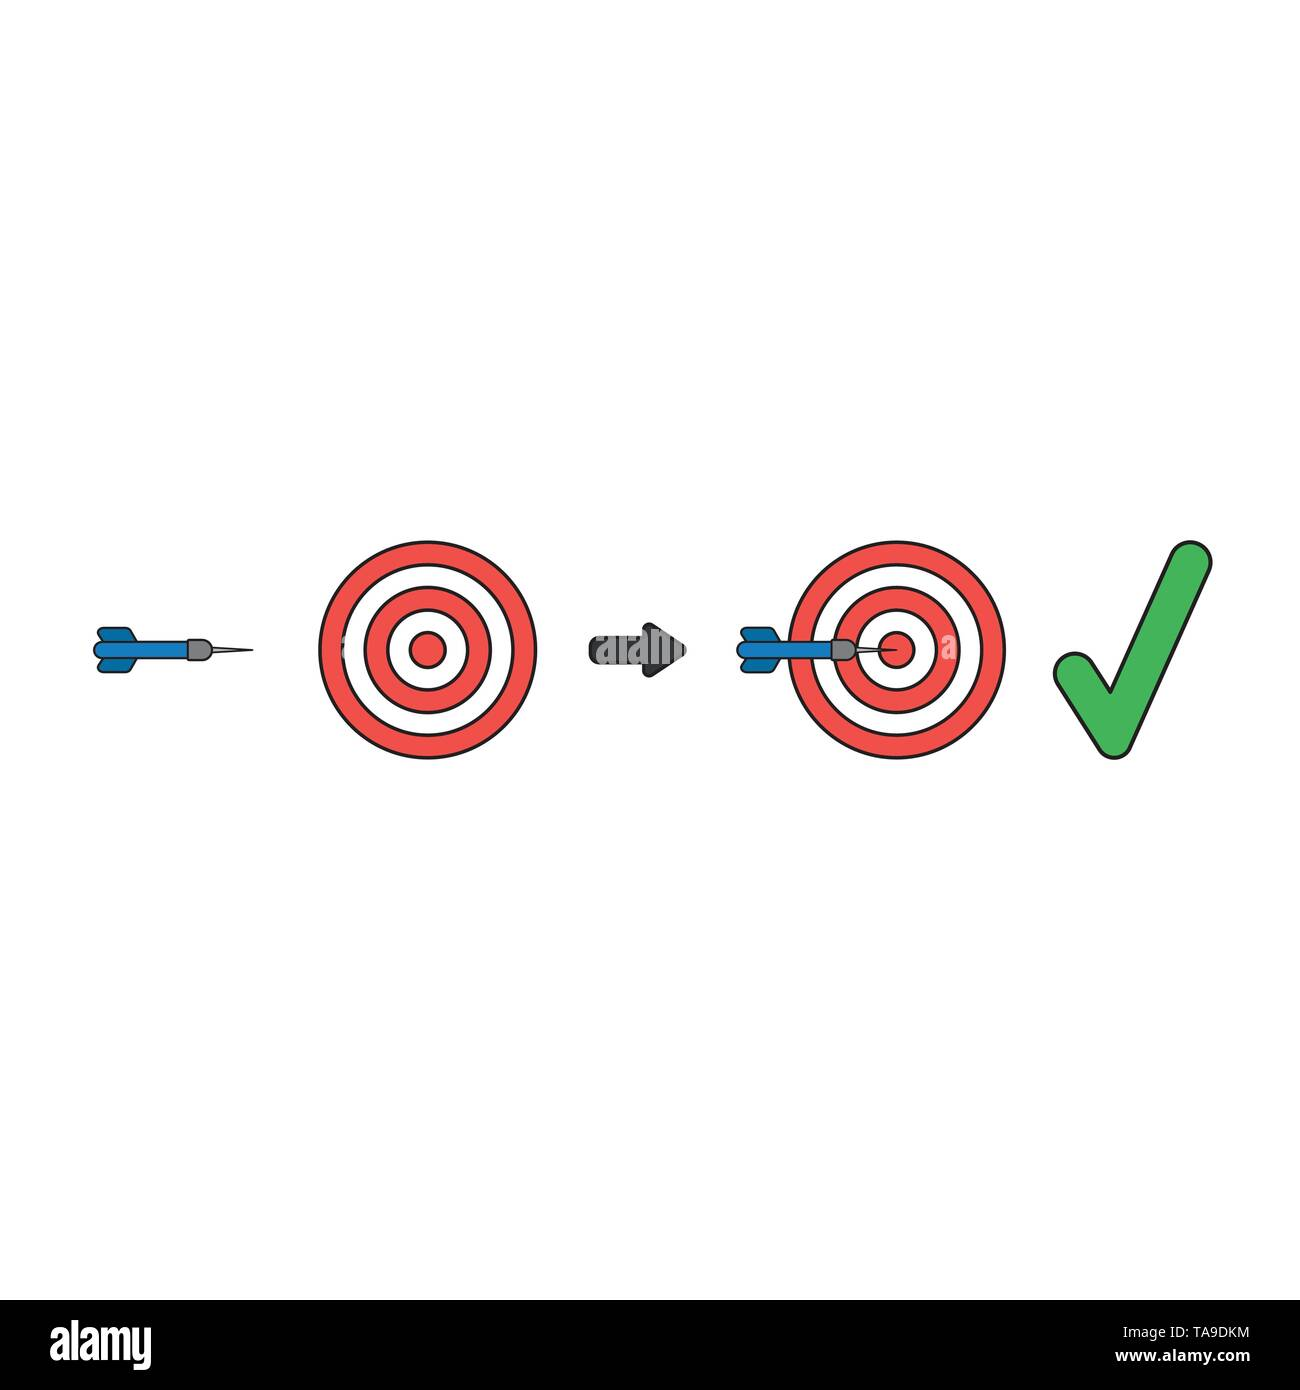 Vector icon concept of bulls eye and dart in the center with check mark. Black outlines and colored. - Stock Image